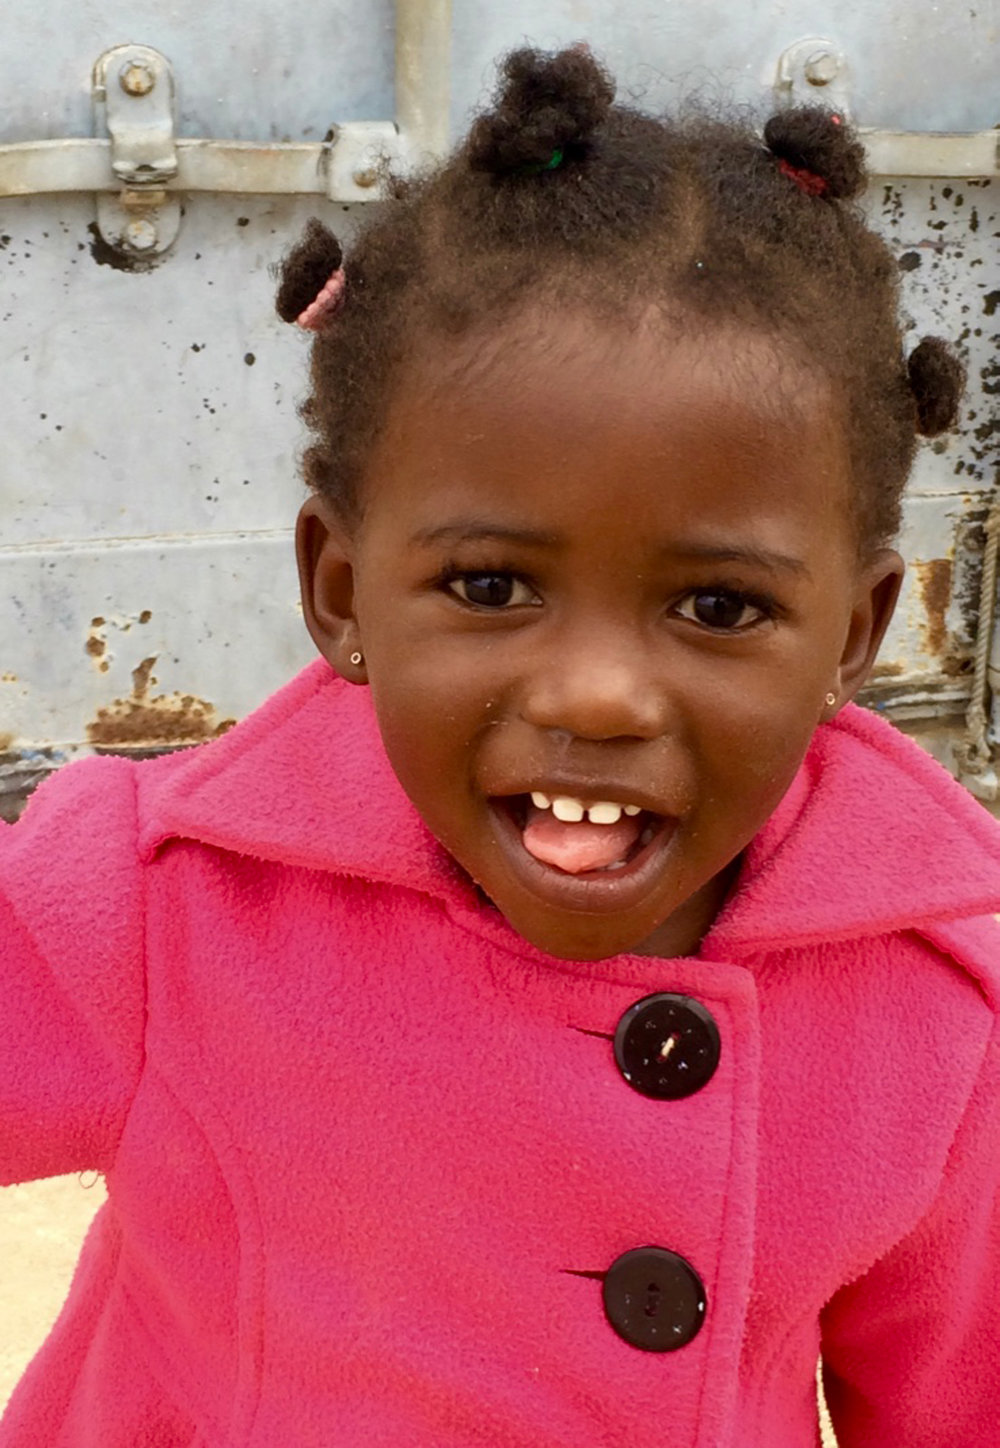 """When I first visited this little girl in Zwelisha, South Africa, in 2015, she was only a few months old. This year, I had the opportunity to go back and visit this sweet girl. I was overjoyed to see her beautiful smile greeting me as I drove up."""